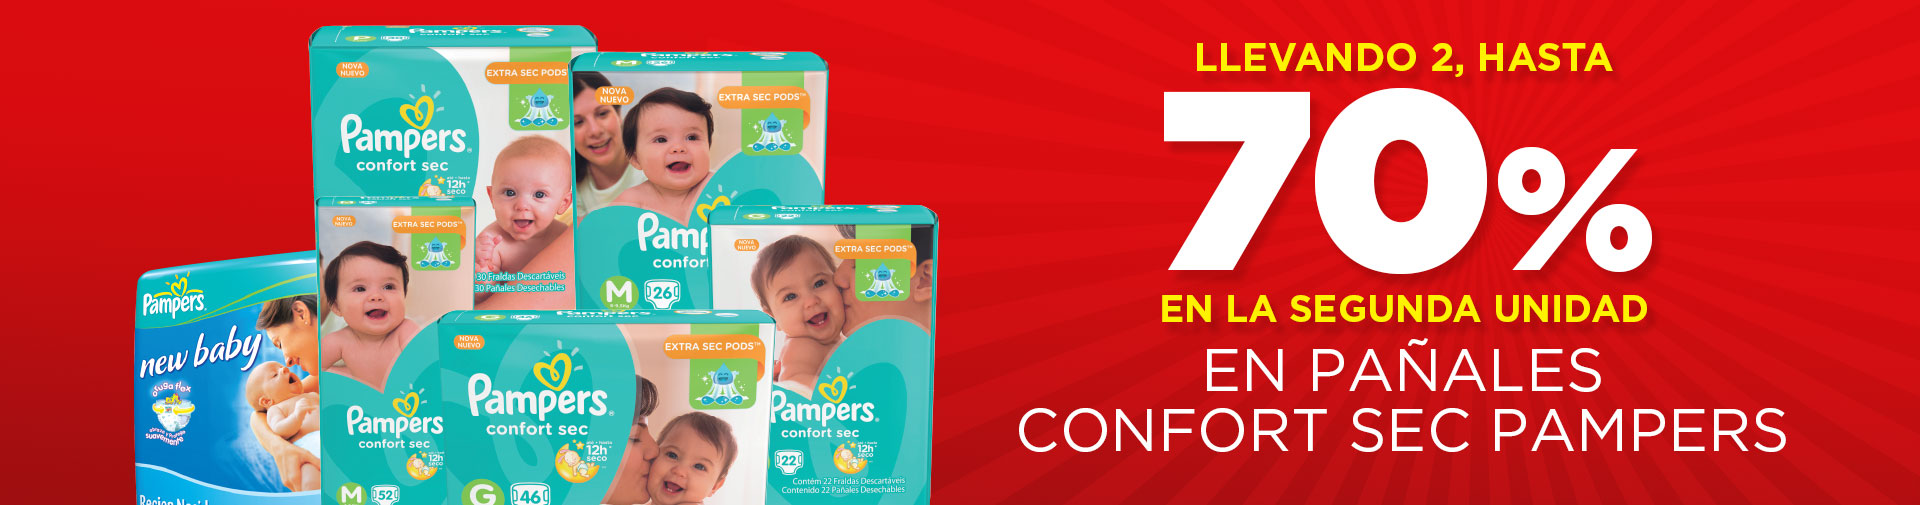 pampers (29.01)